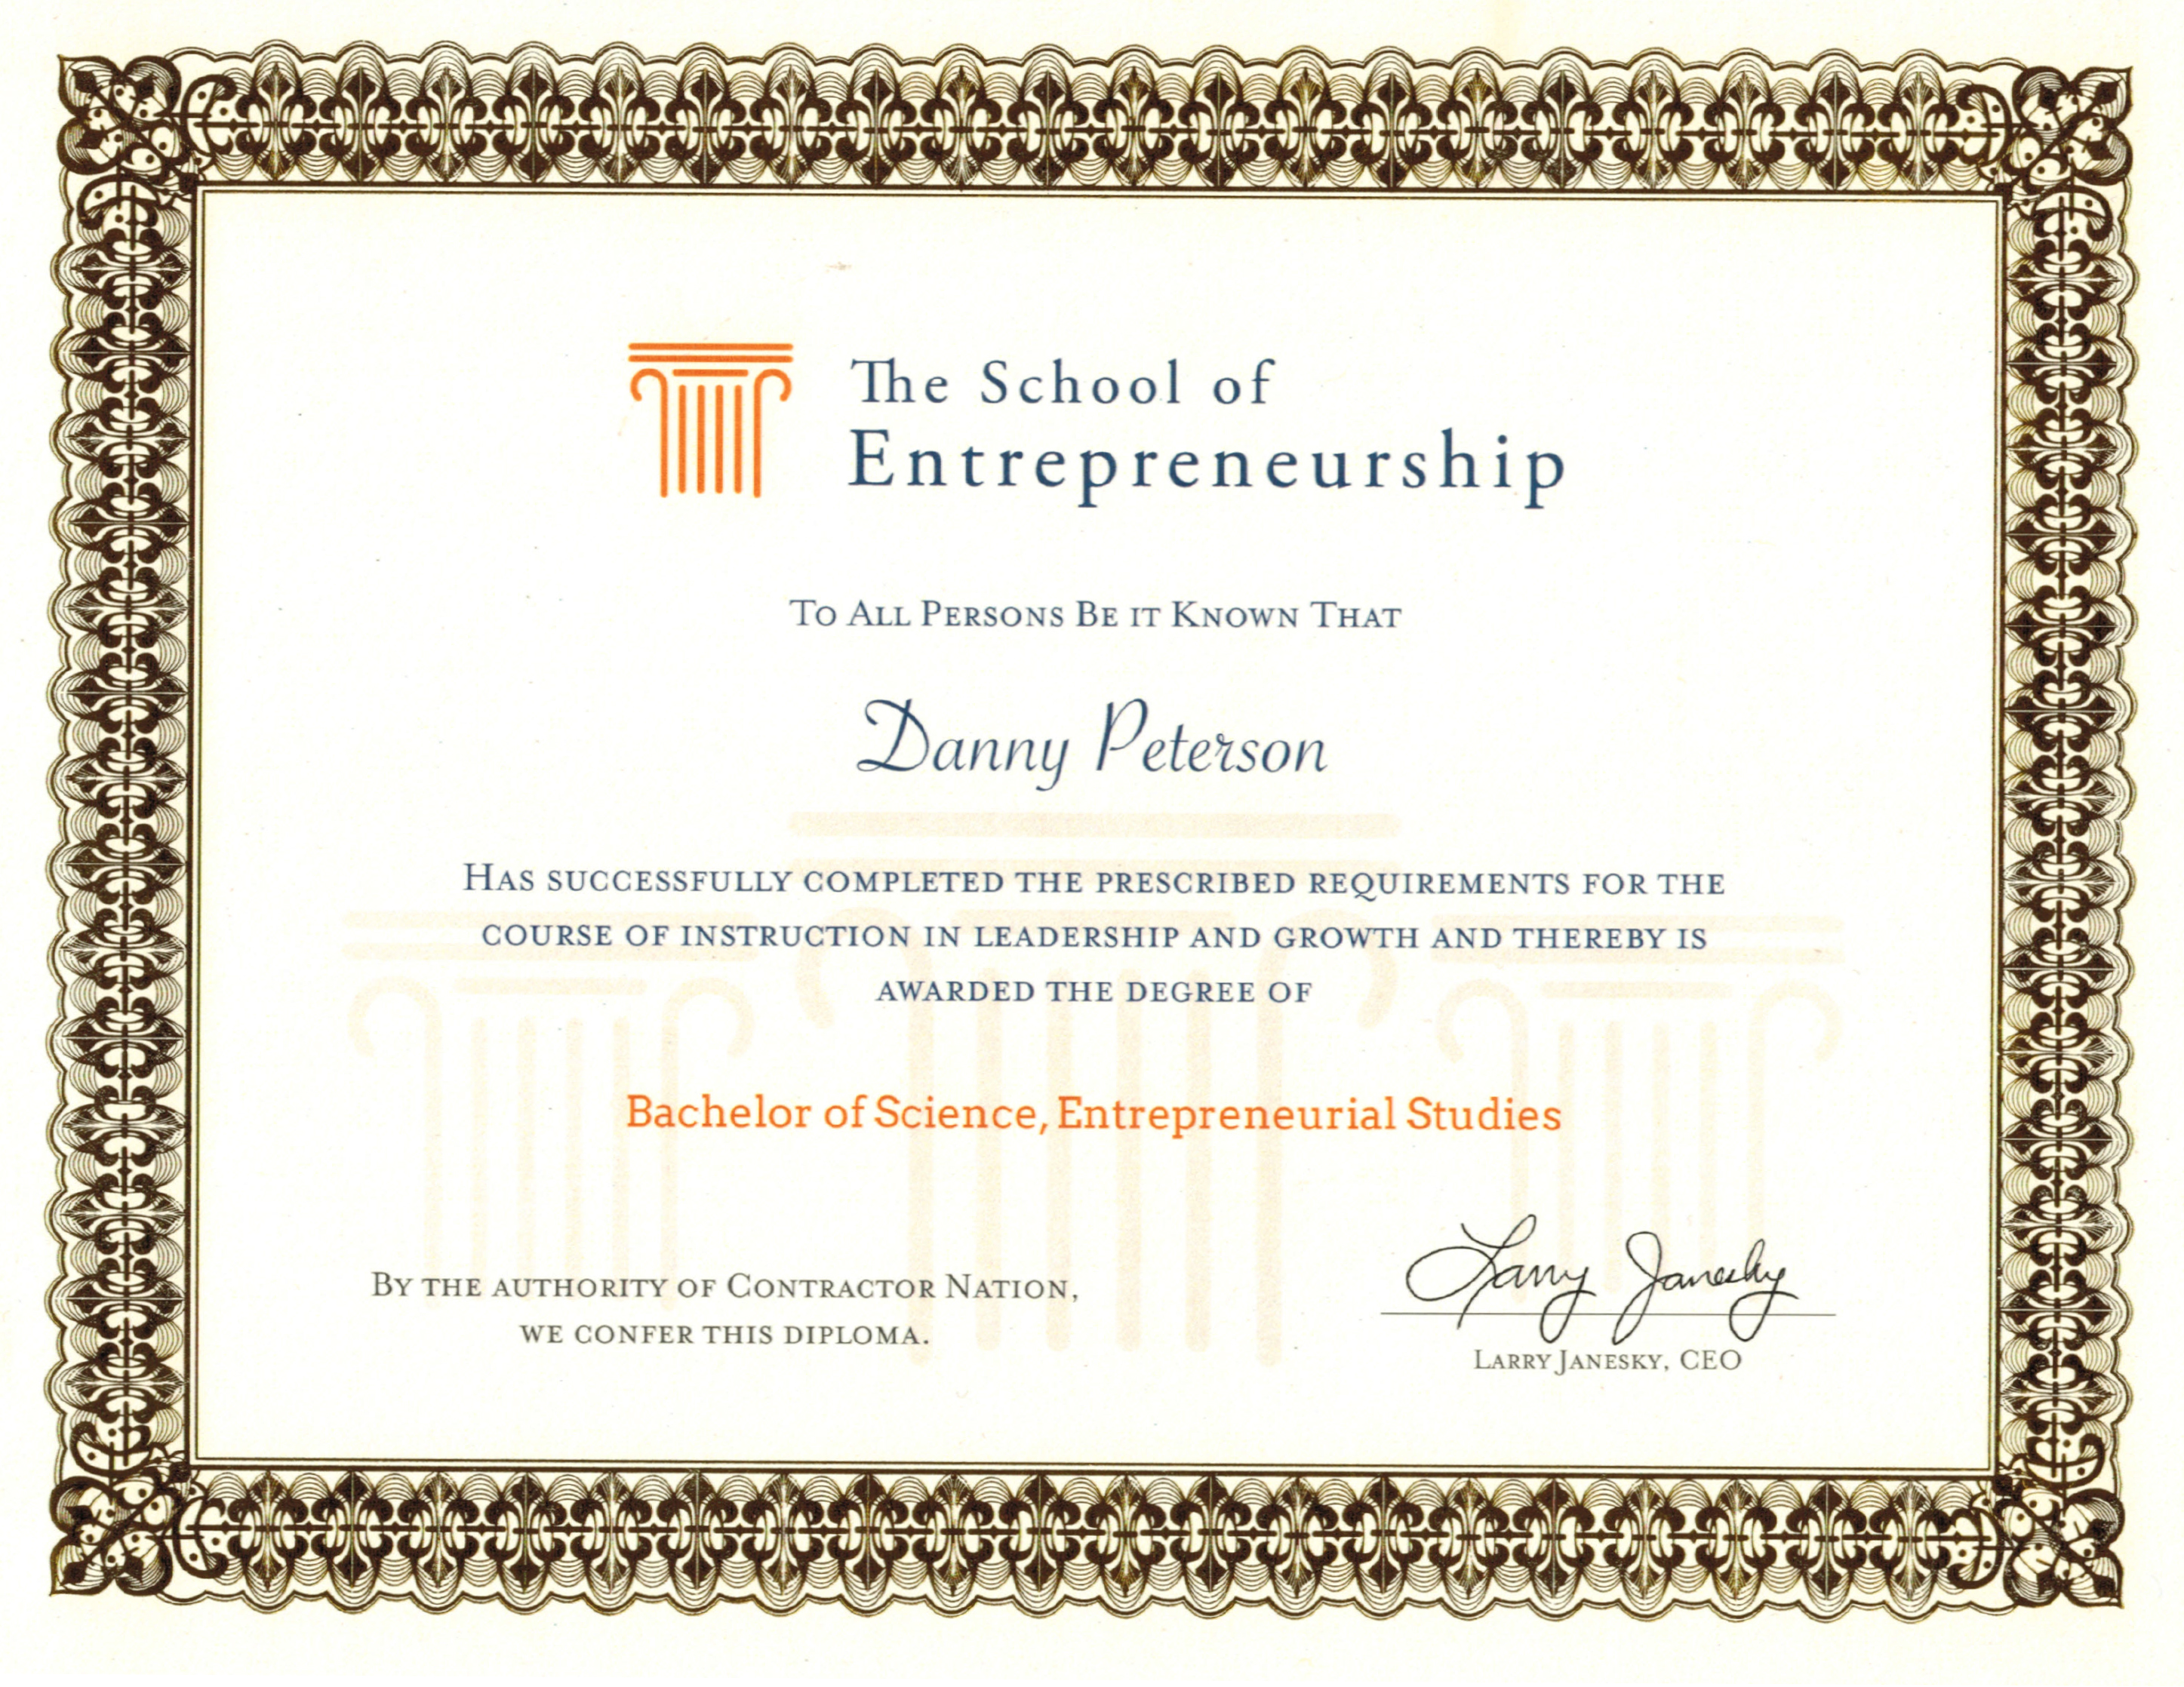 The School of Entrepreneurship Bachelor of Science Diploma